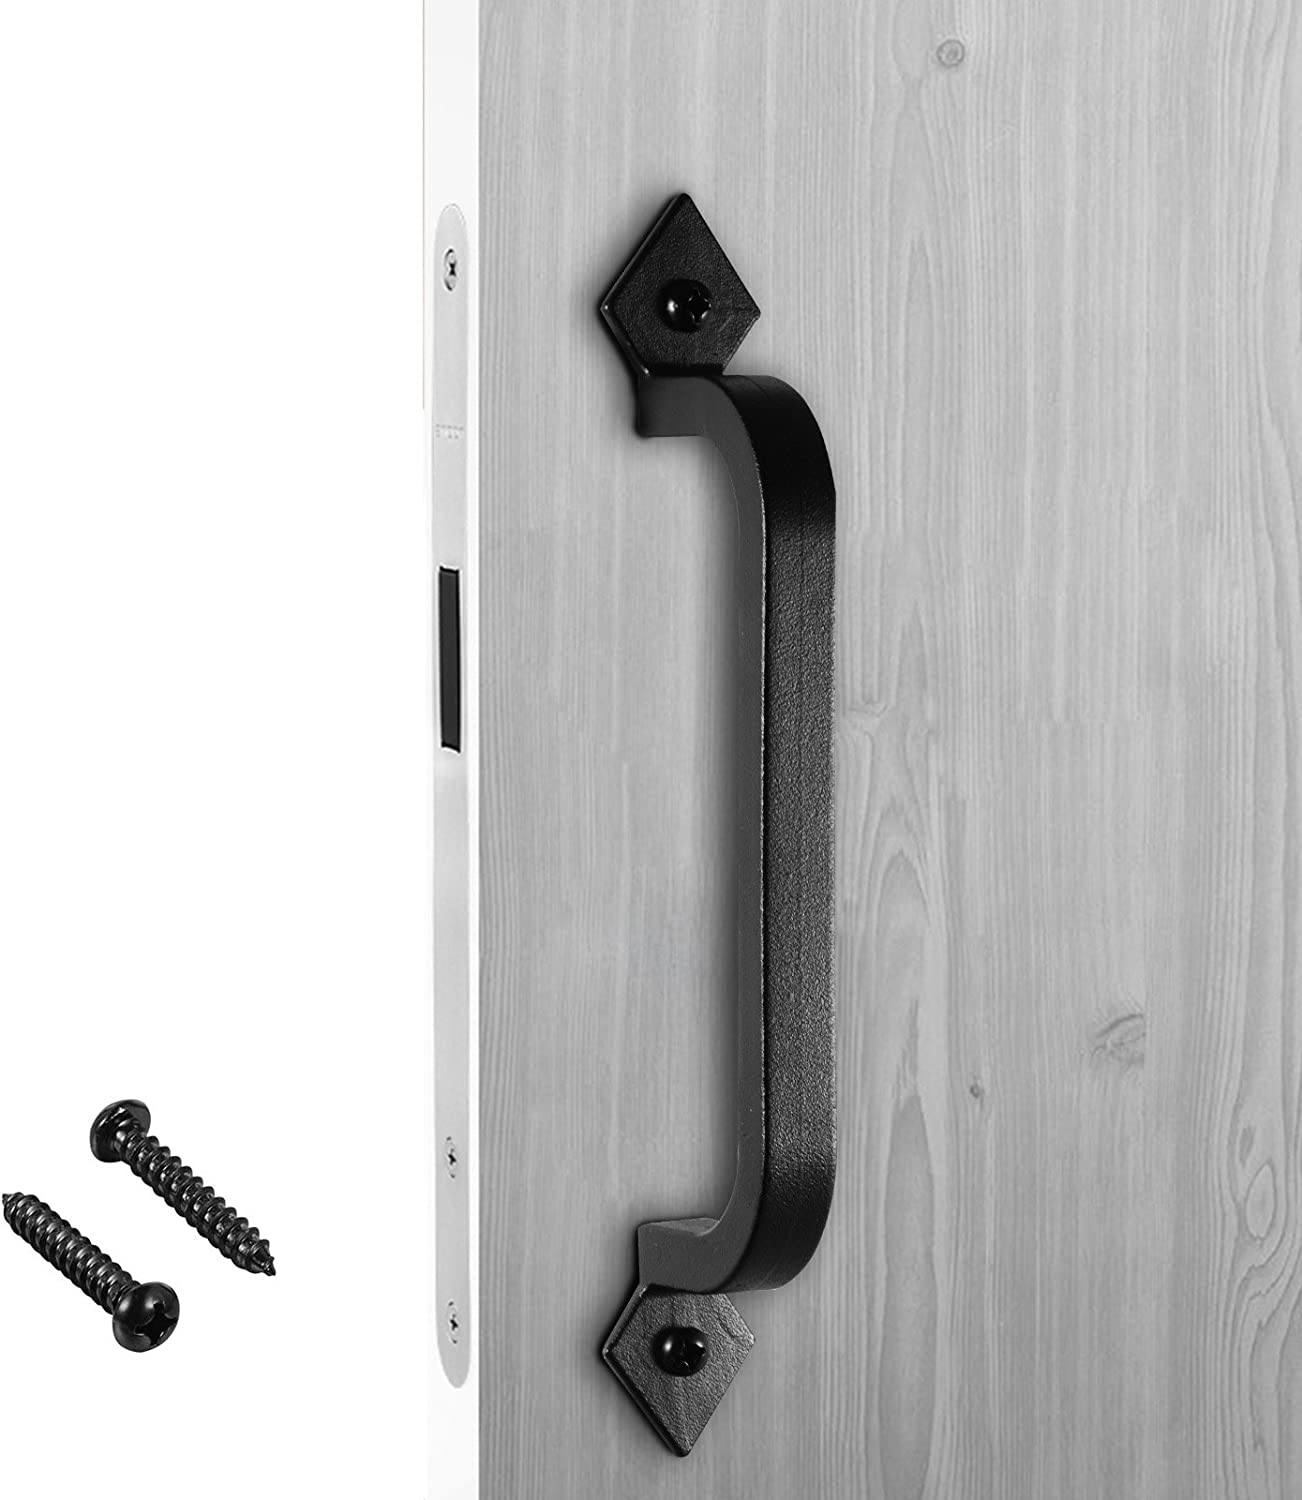 2 Handles Pulls Drawer Door Cabinet Barn Rustic Cast Iron Antique Style 7x2-1//2